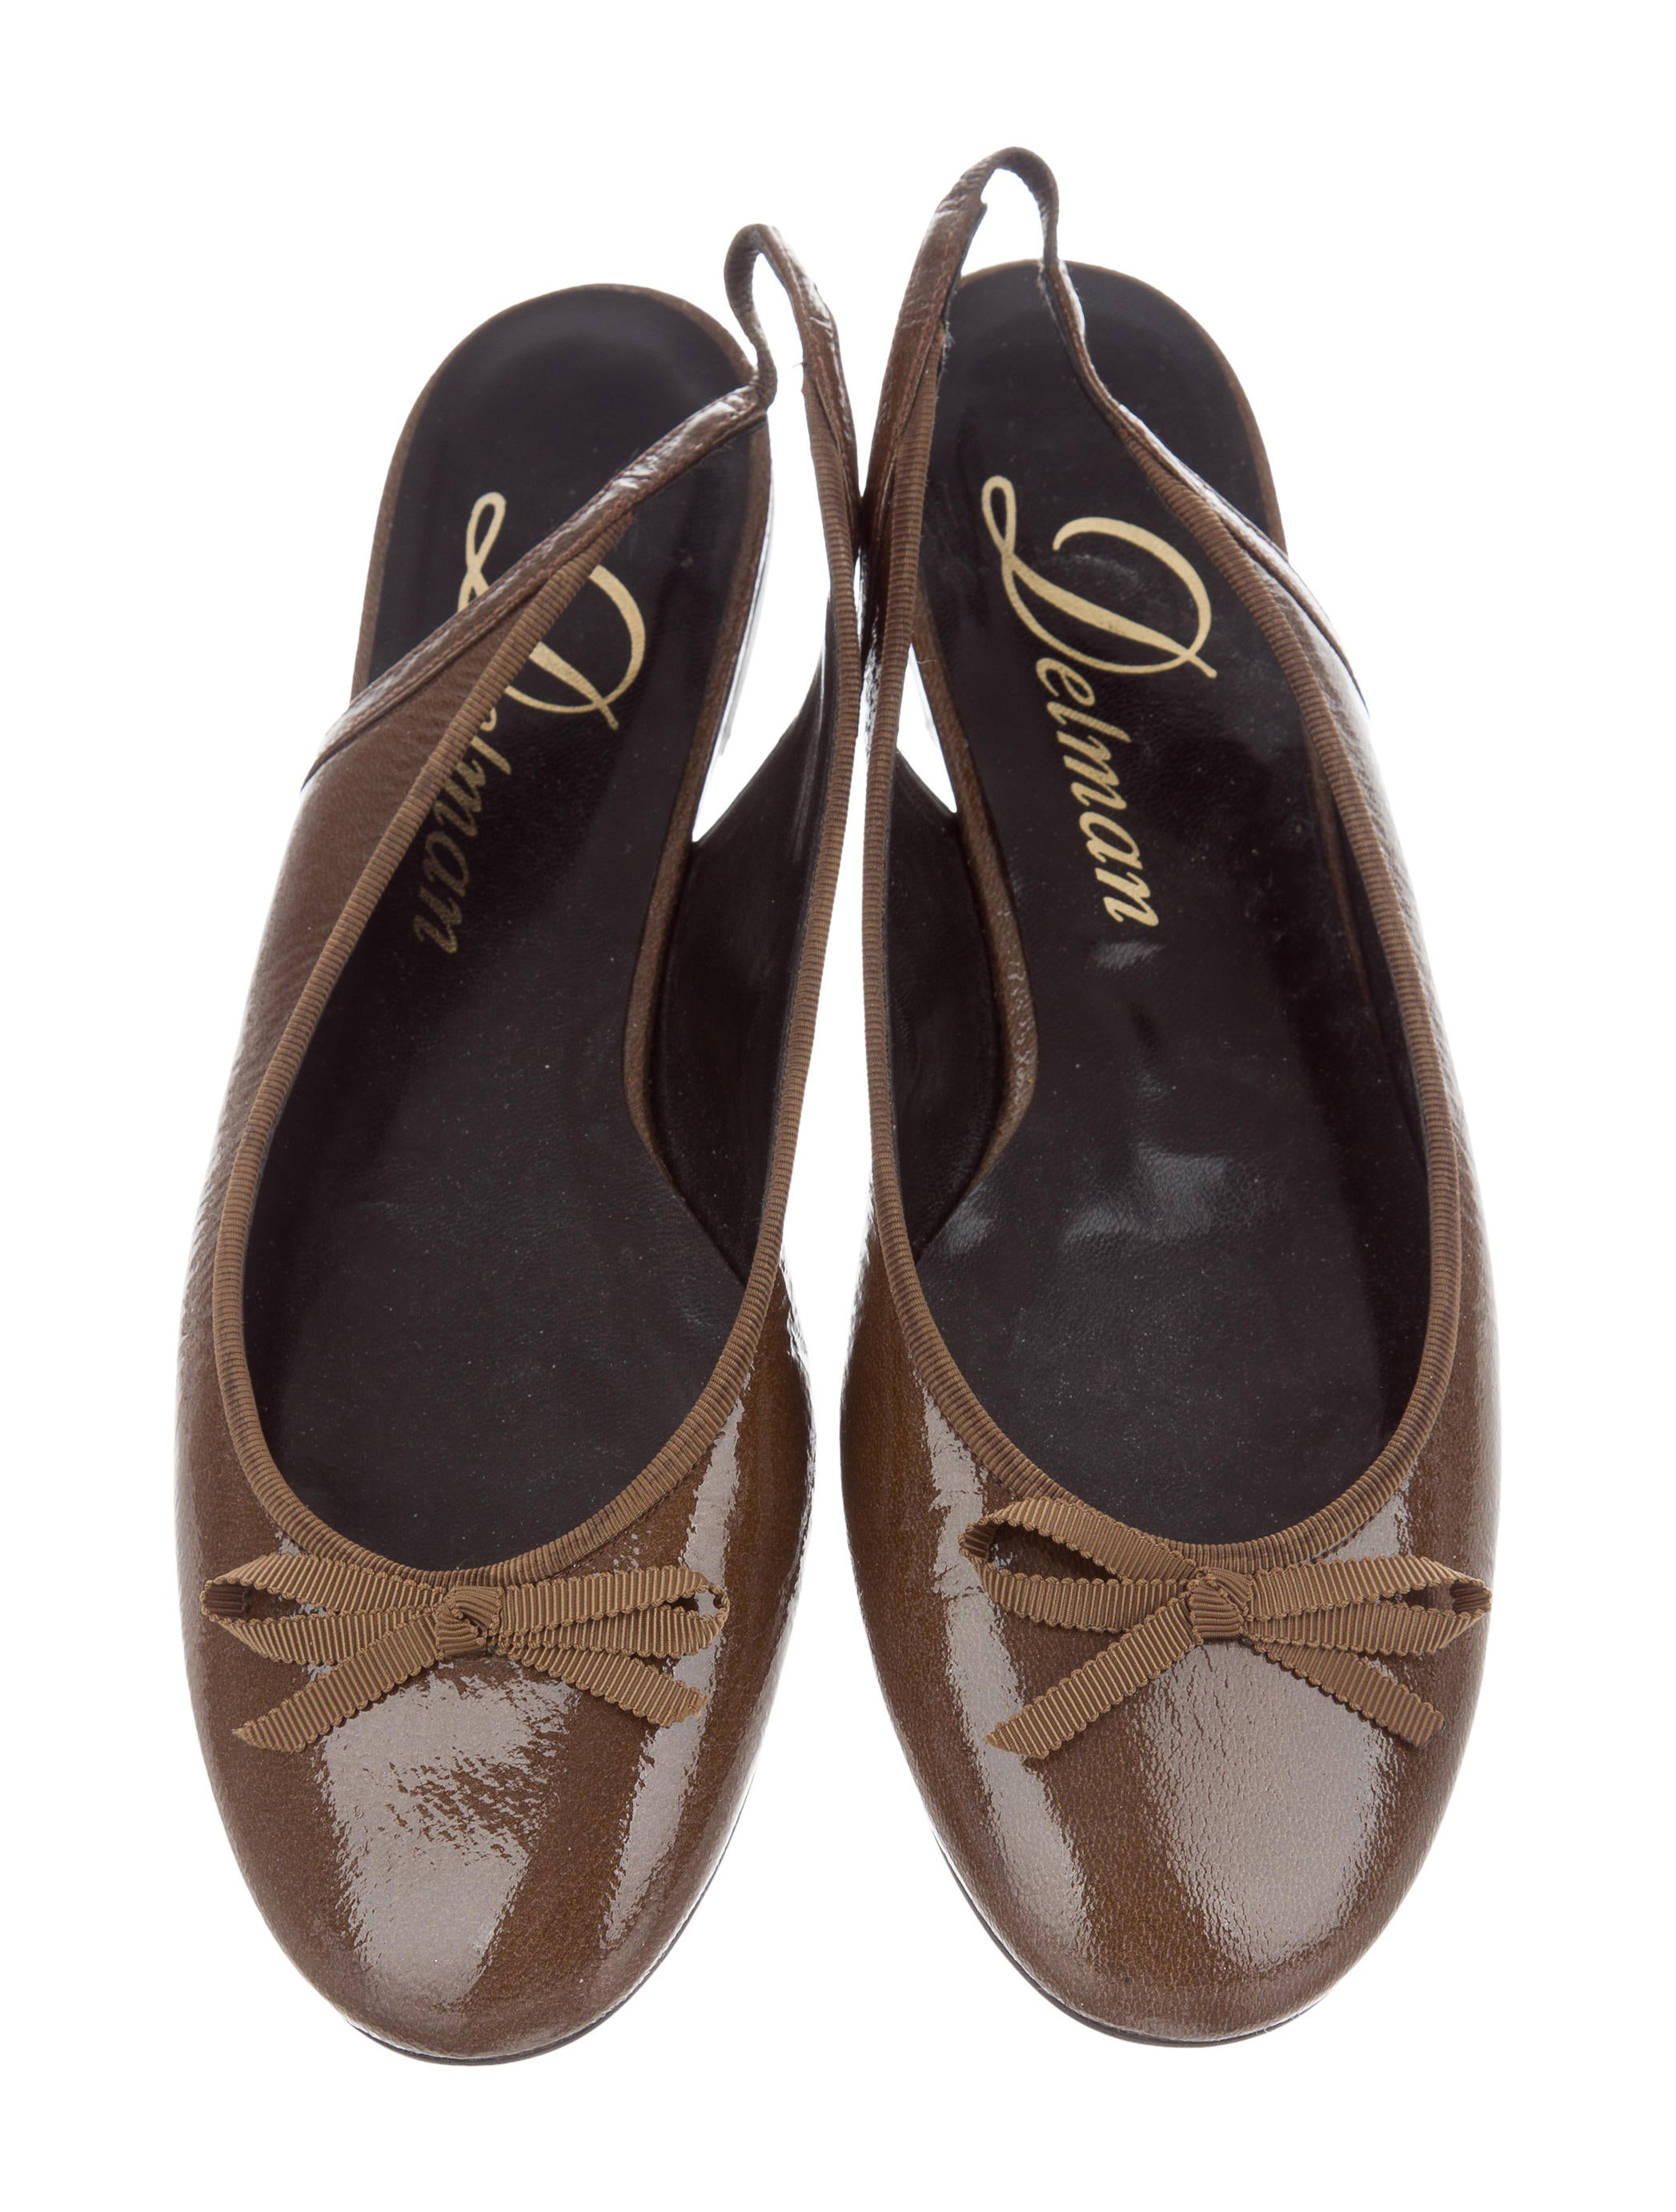 Delman Slingback Bow Flats low price cheap online discount best seller outlet authentic pay with visa for sale official site sale online jBc1TBbg6